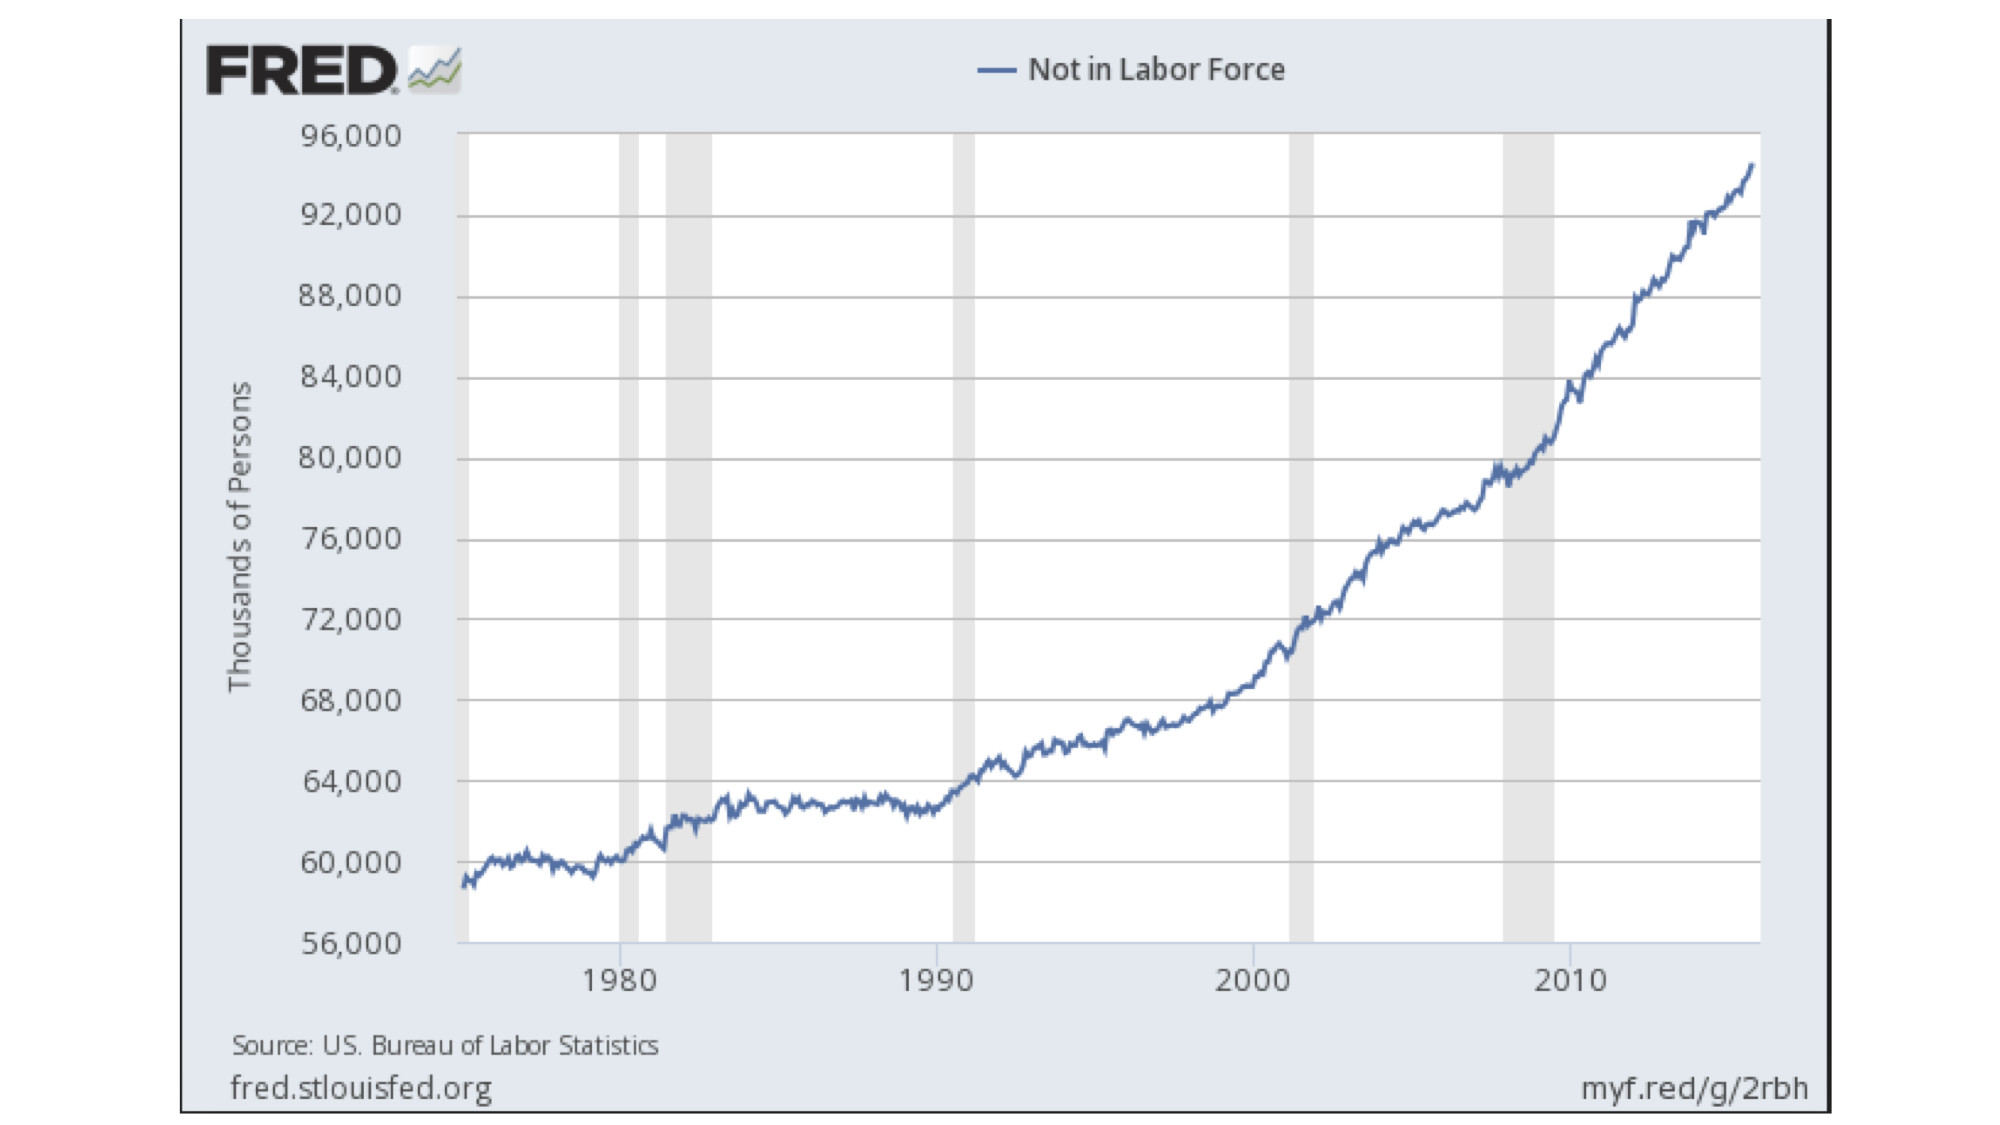 The group of people not working is growing more than twice as fast as the actual working labor force. This fastest (non-working) growing portion of the population is partially a byproduct of demographics and a choice of some to drop out of the labor pool – see declining participation rate, below. One aspect that will put significant strain on this equation is the outlook for people to continue to live longer and need their government benefits, such as   medi-care  and social security, for a much longer time period.